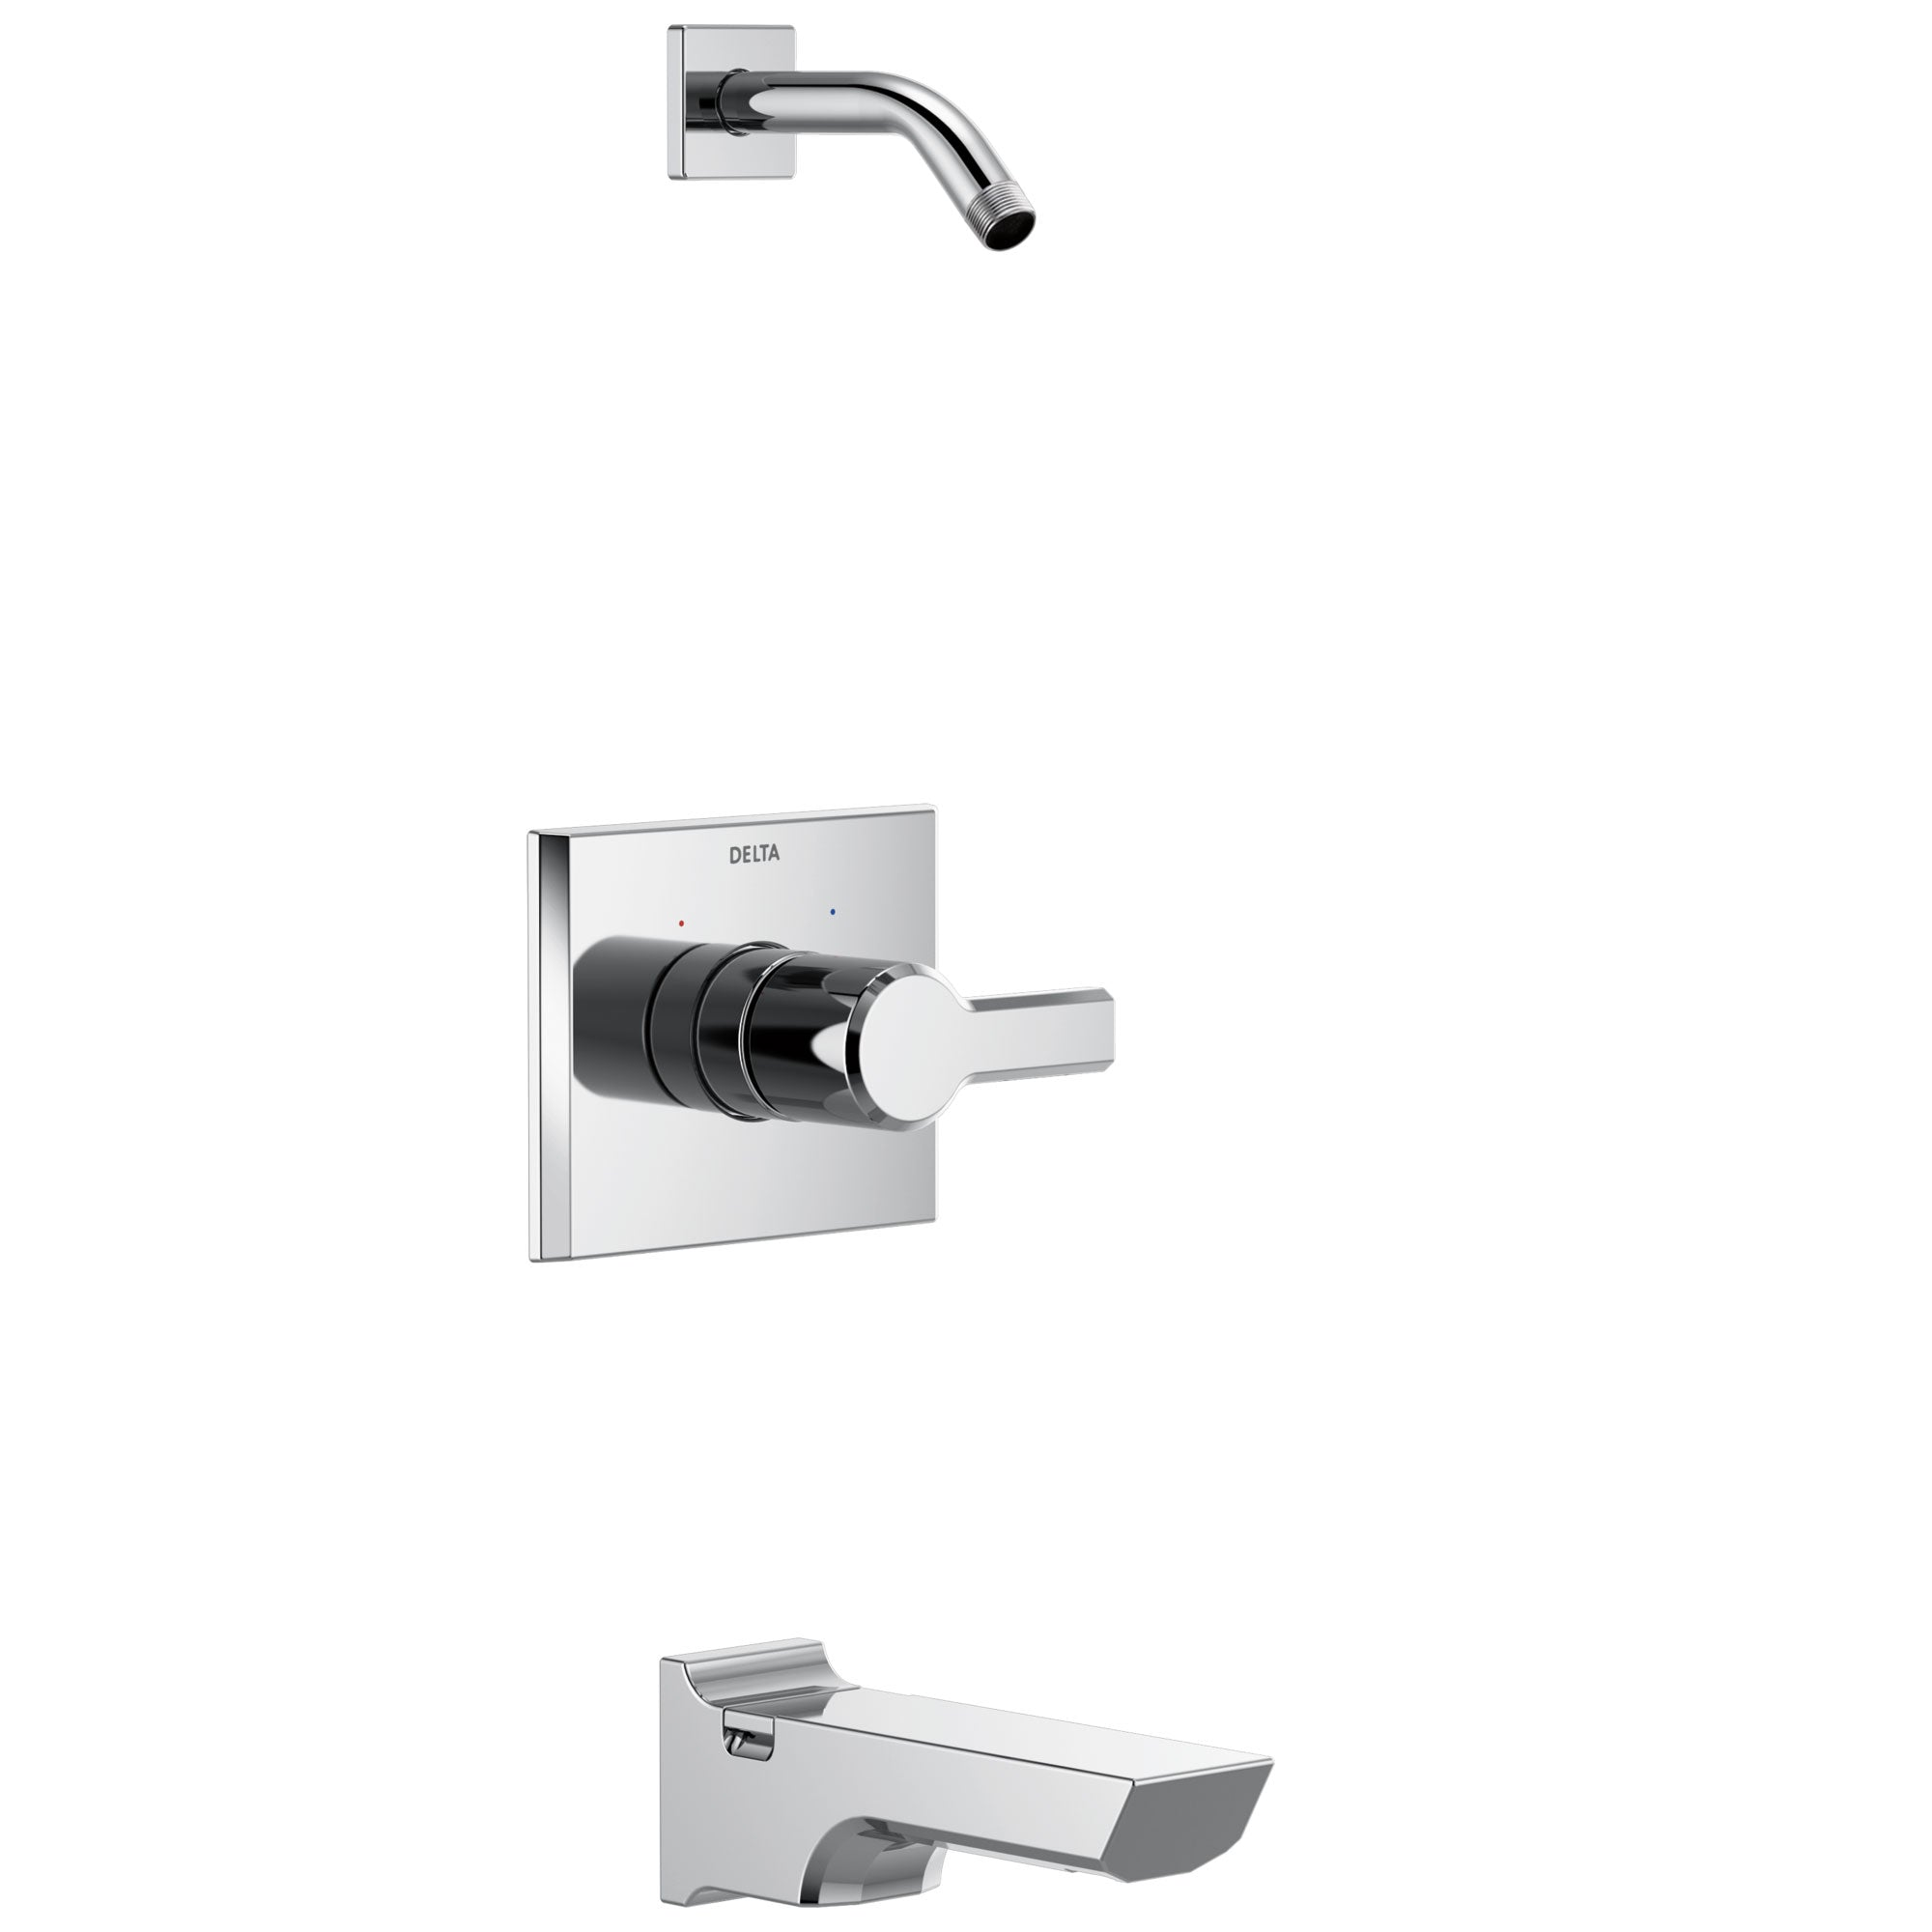 Delta Pivotal Chrome Finish 14 Series Tub and Shower Faucet Combo Less showerhead Includes Handle, Cartridge, and Valve without Stops D3419V